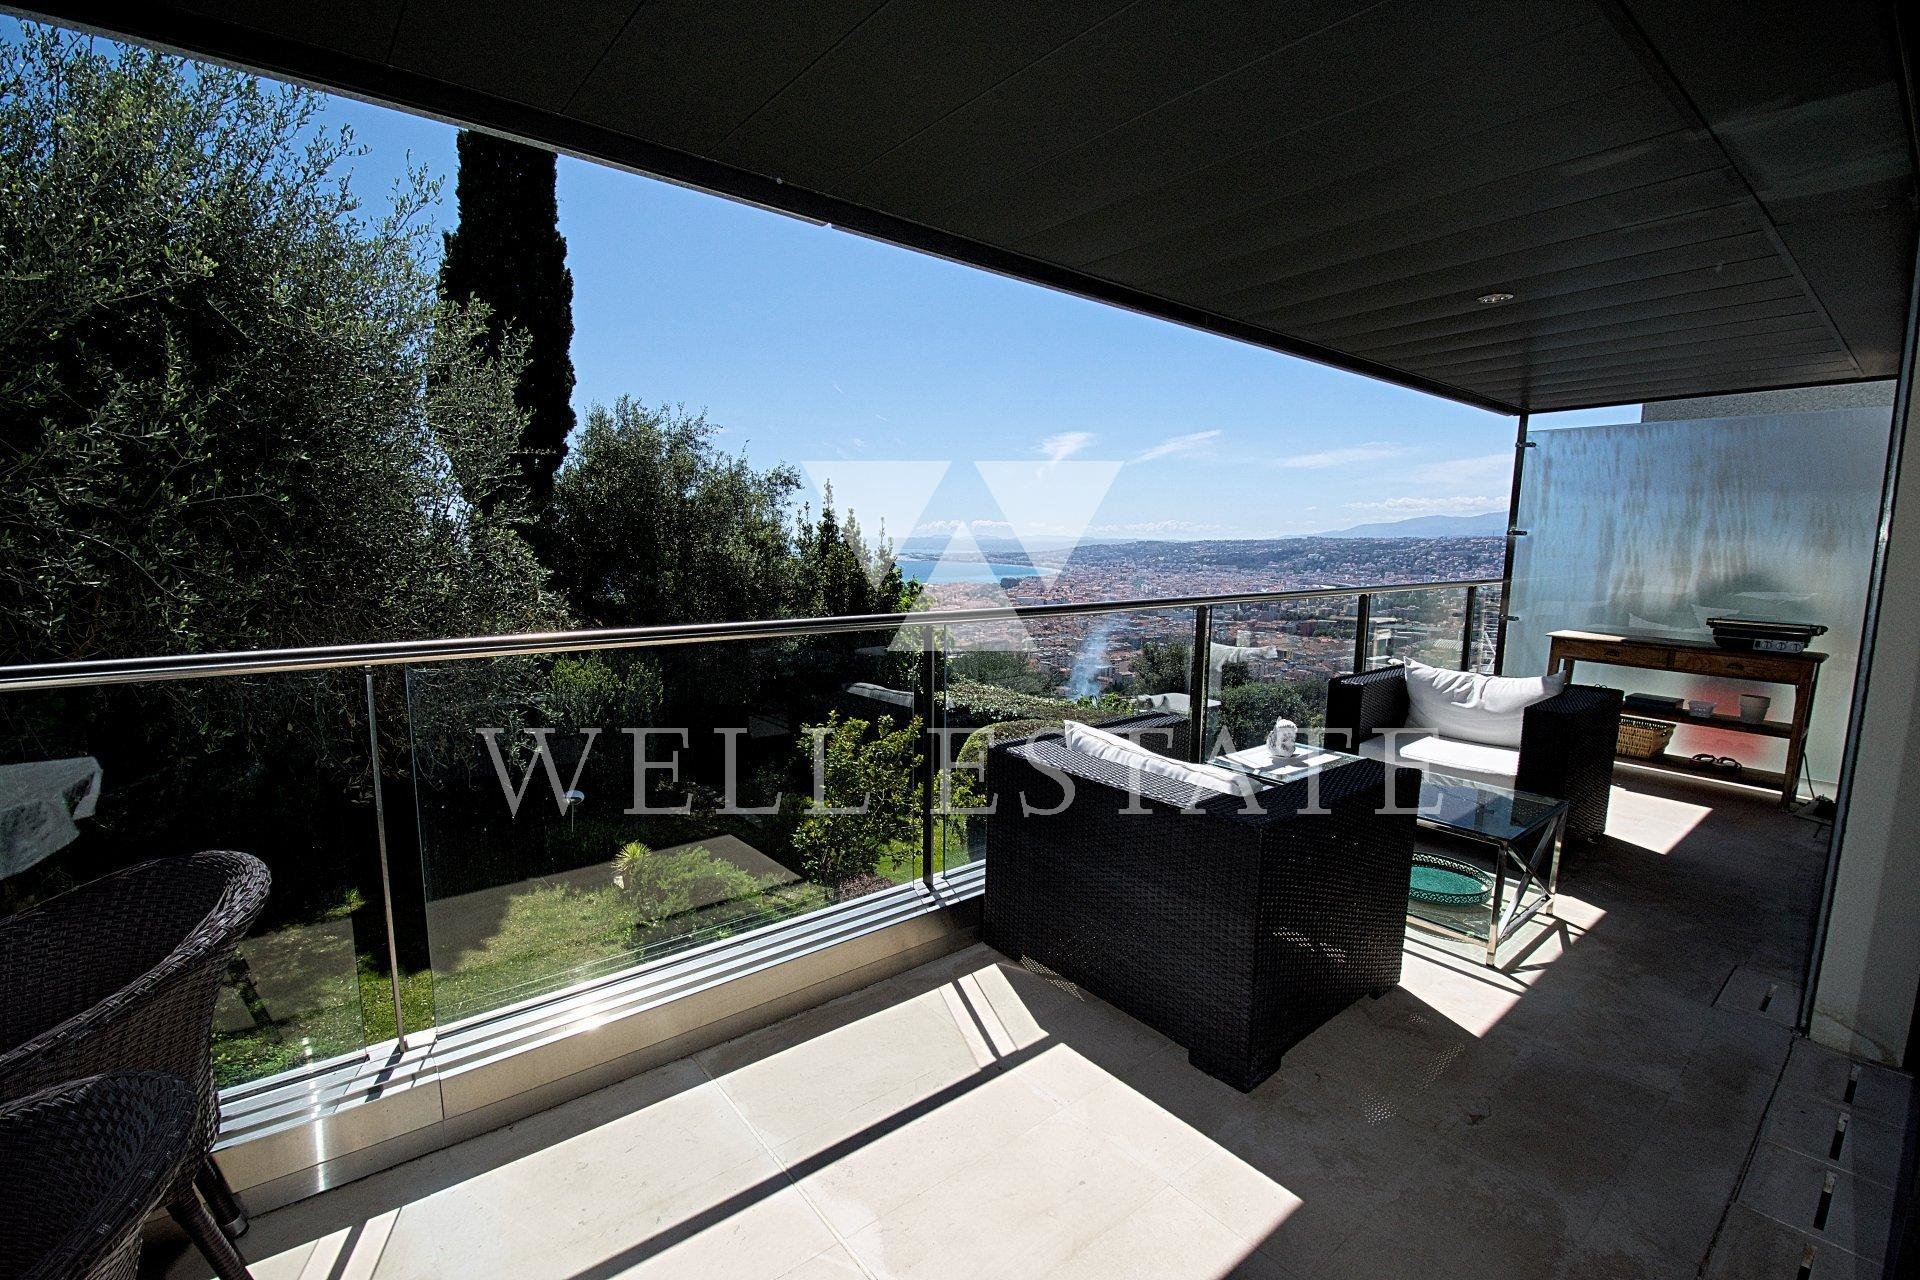 FOR RENT NICE MONT BORON 4 BEDROOM 150M2 APARTMENT SEA VIEW RESIDENCE WITH SWIMMING POOL.